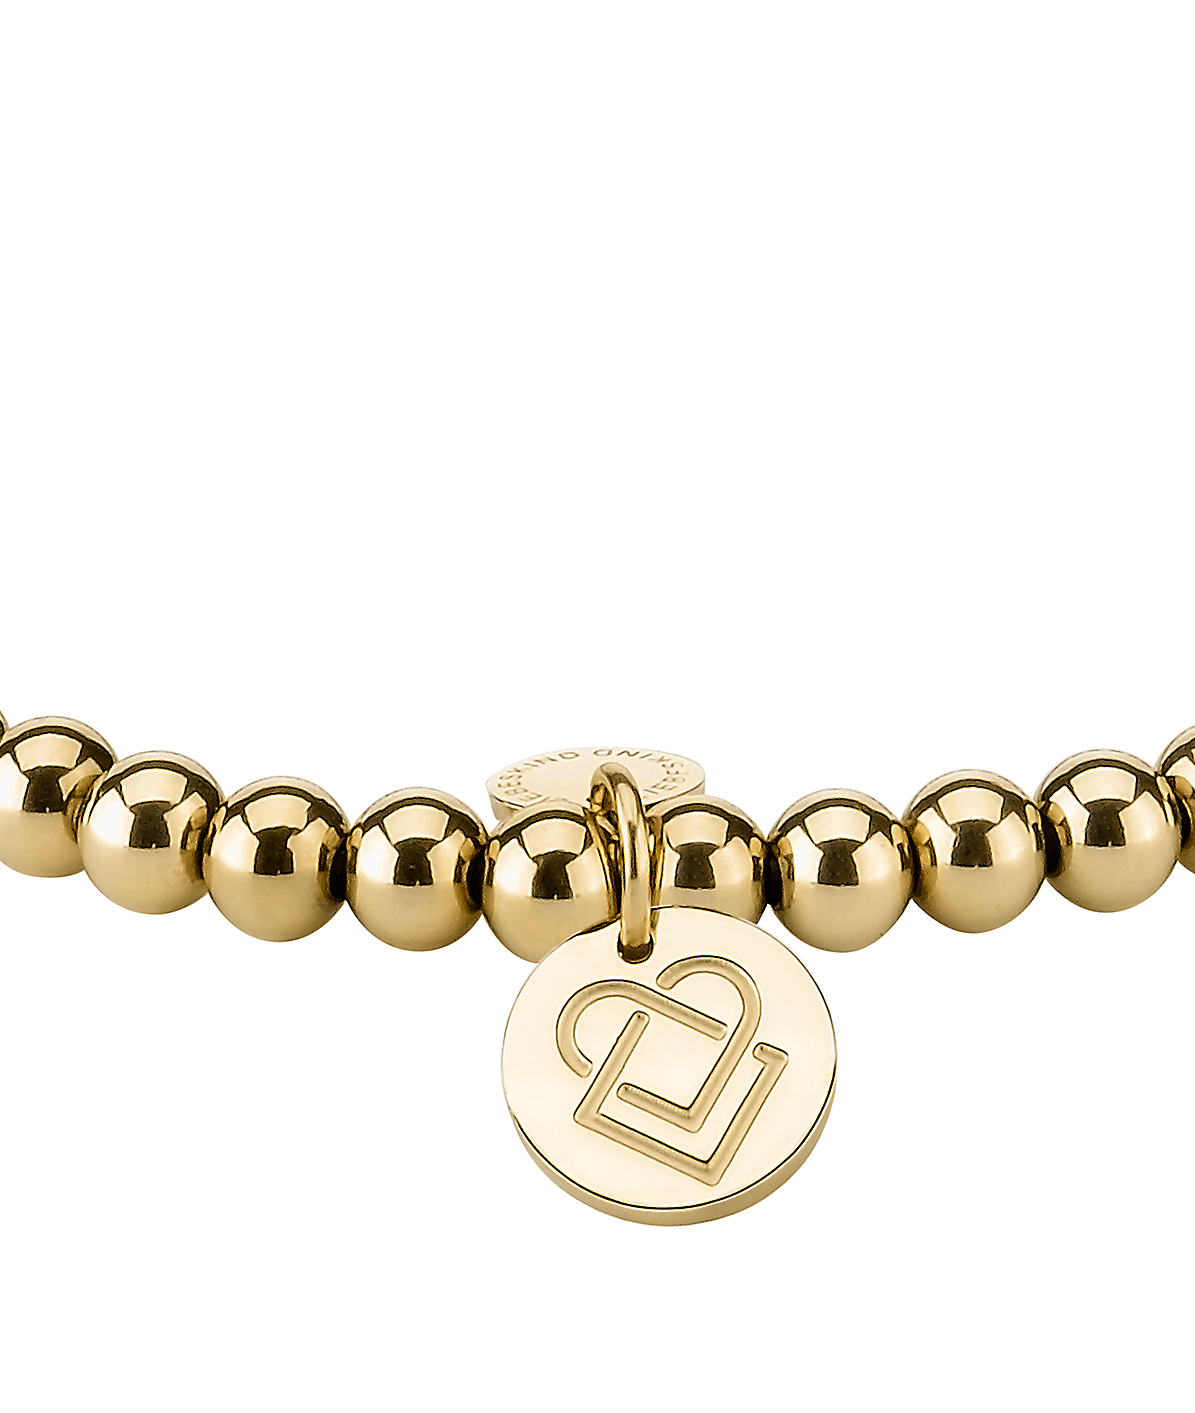 Bracelet from liebeskind